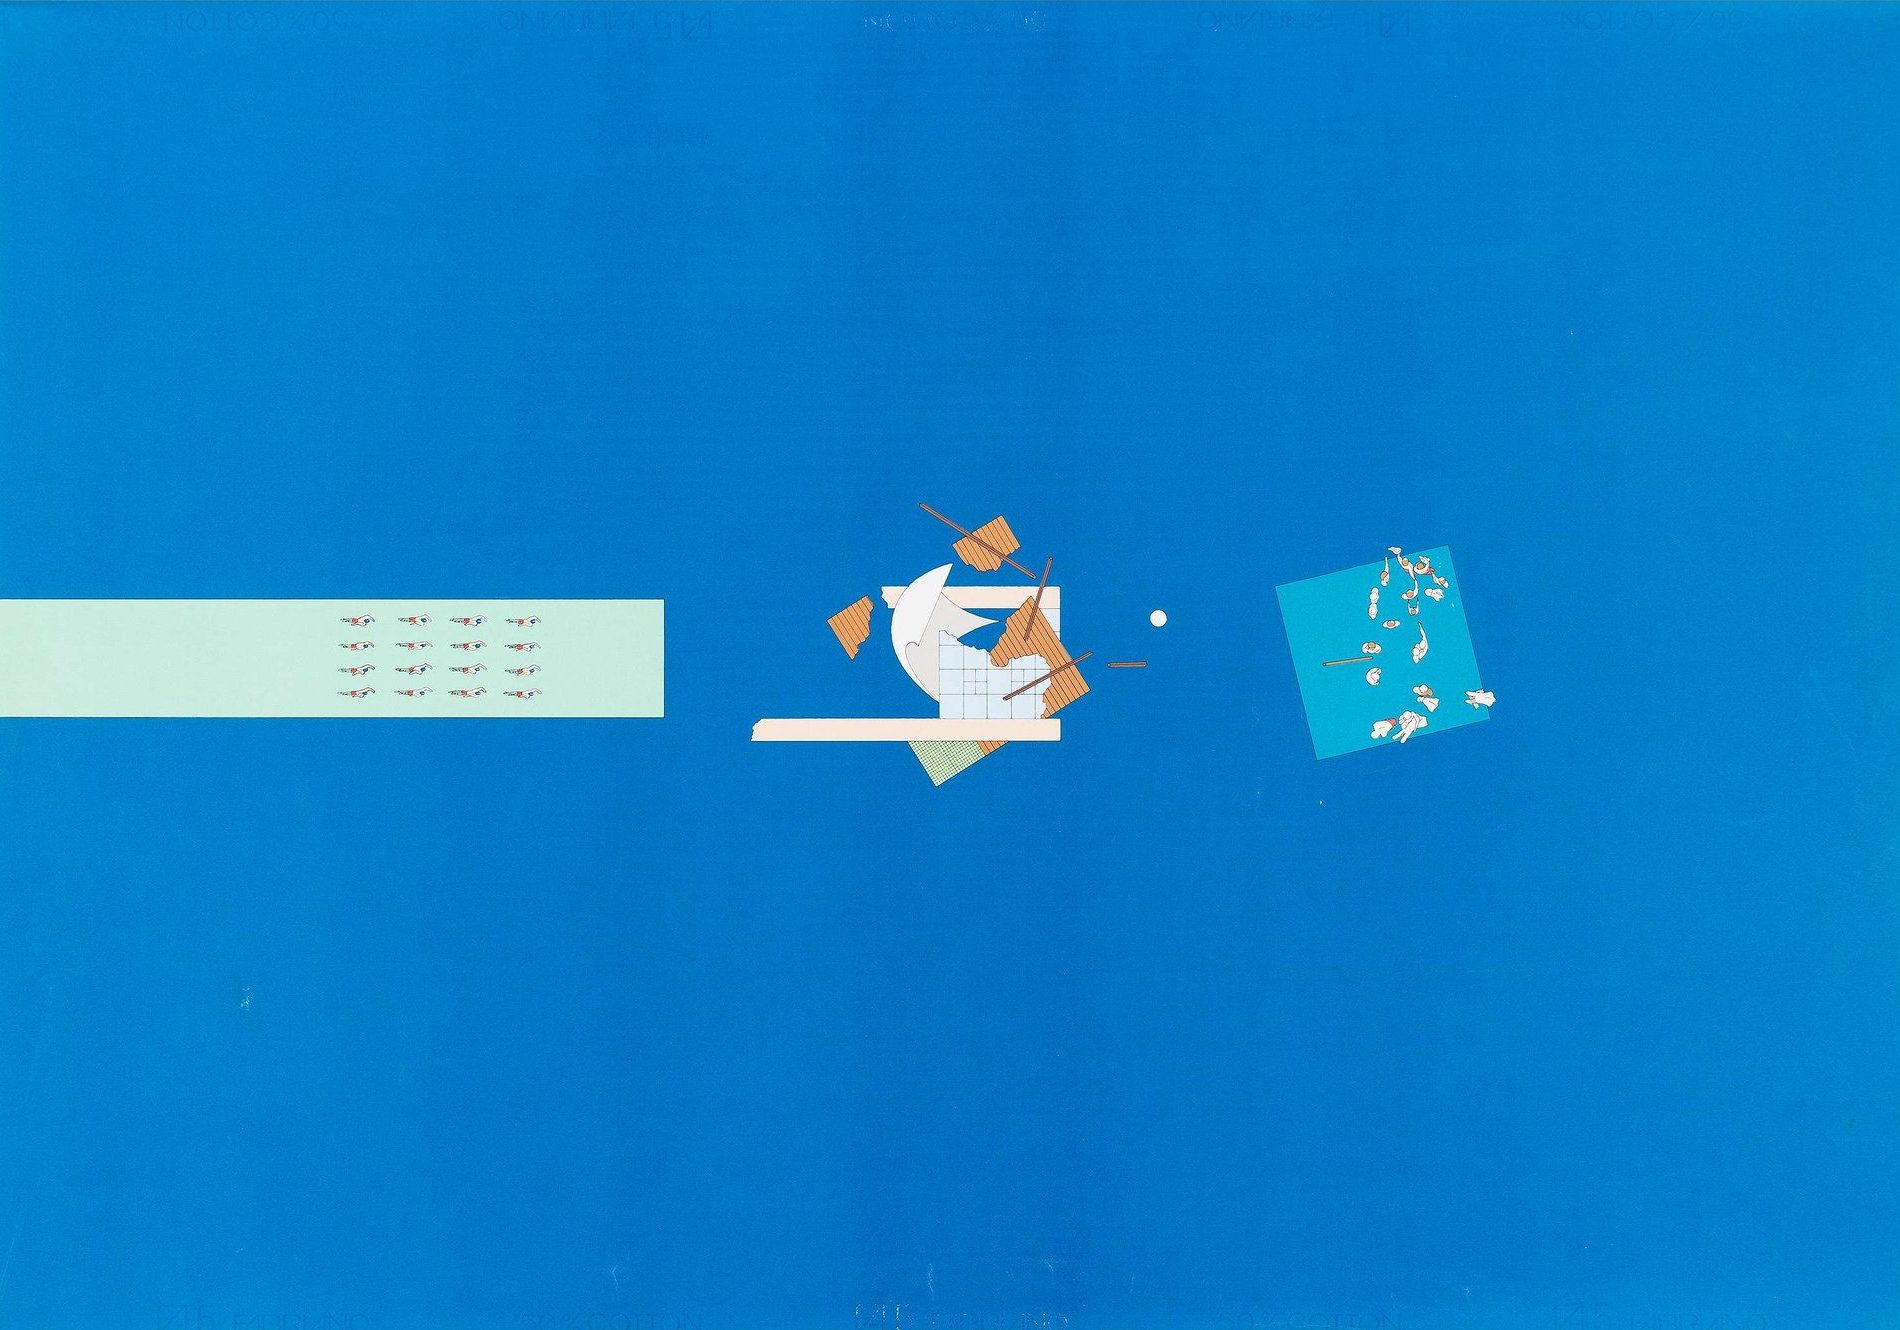 blue background with blue and orange shapes on